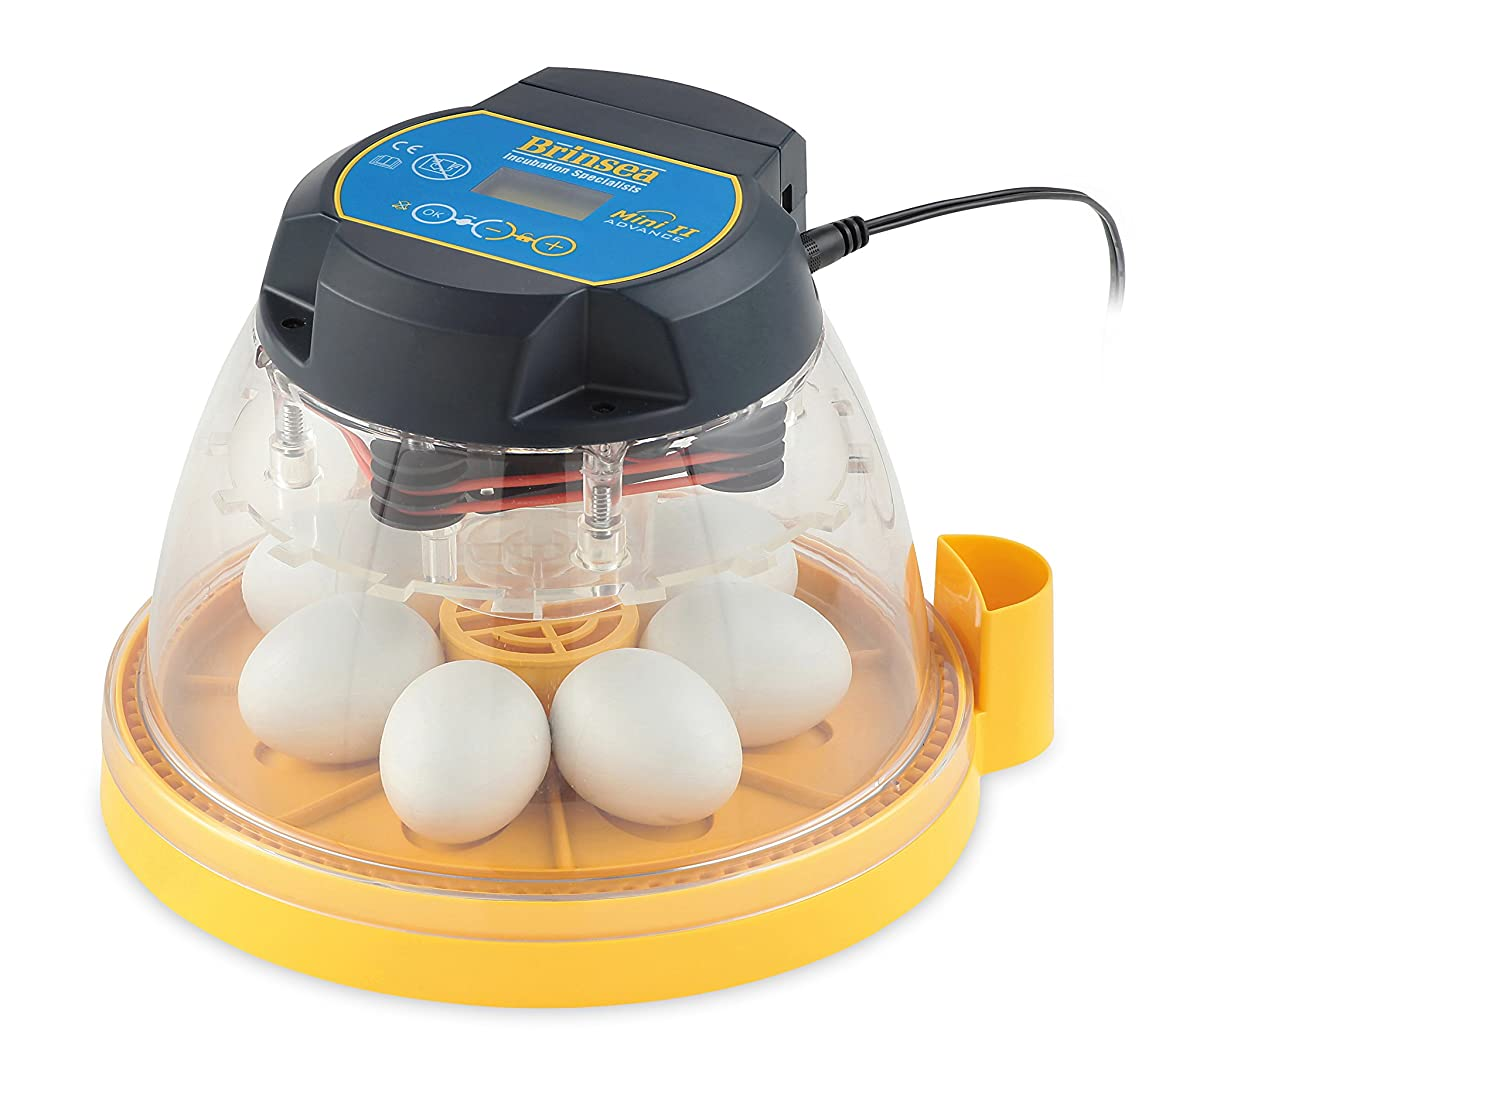 B01N56NGS8 Brinsea Products Mini II Advance Automatic 7 Egg Incubator, One Size 81d-sr6NiuL._SL1500_